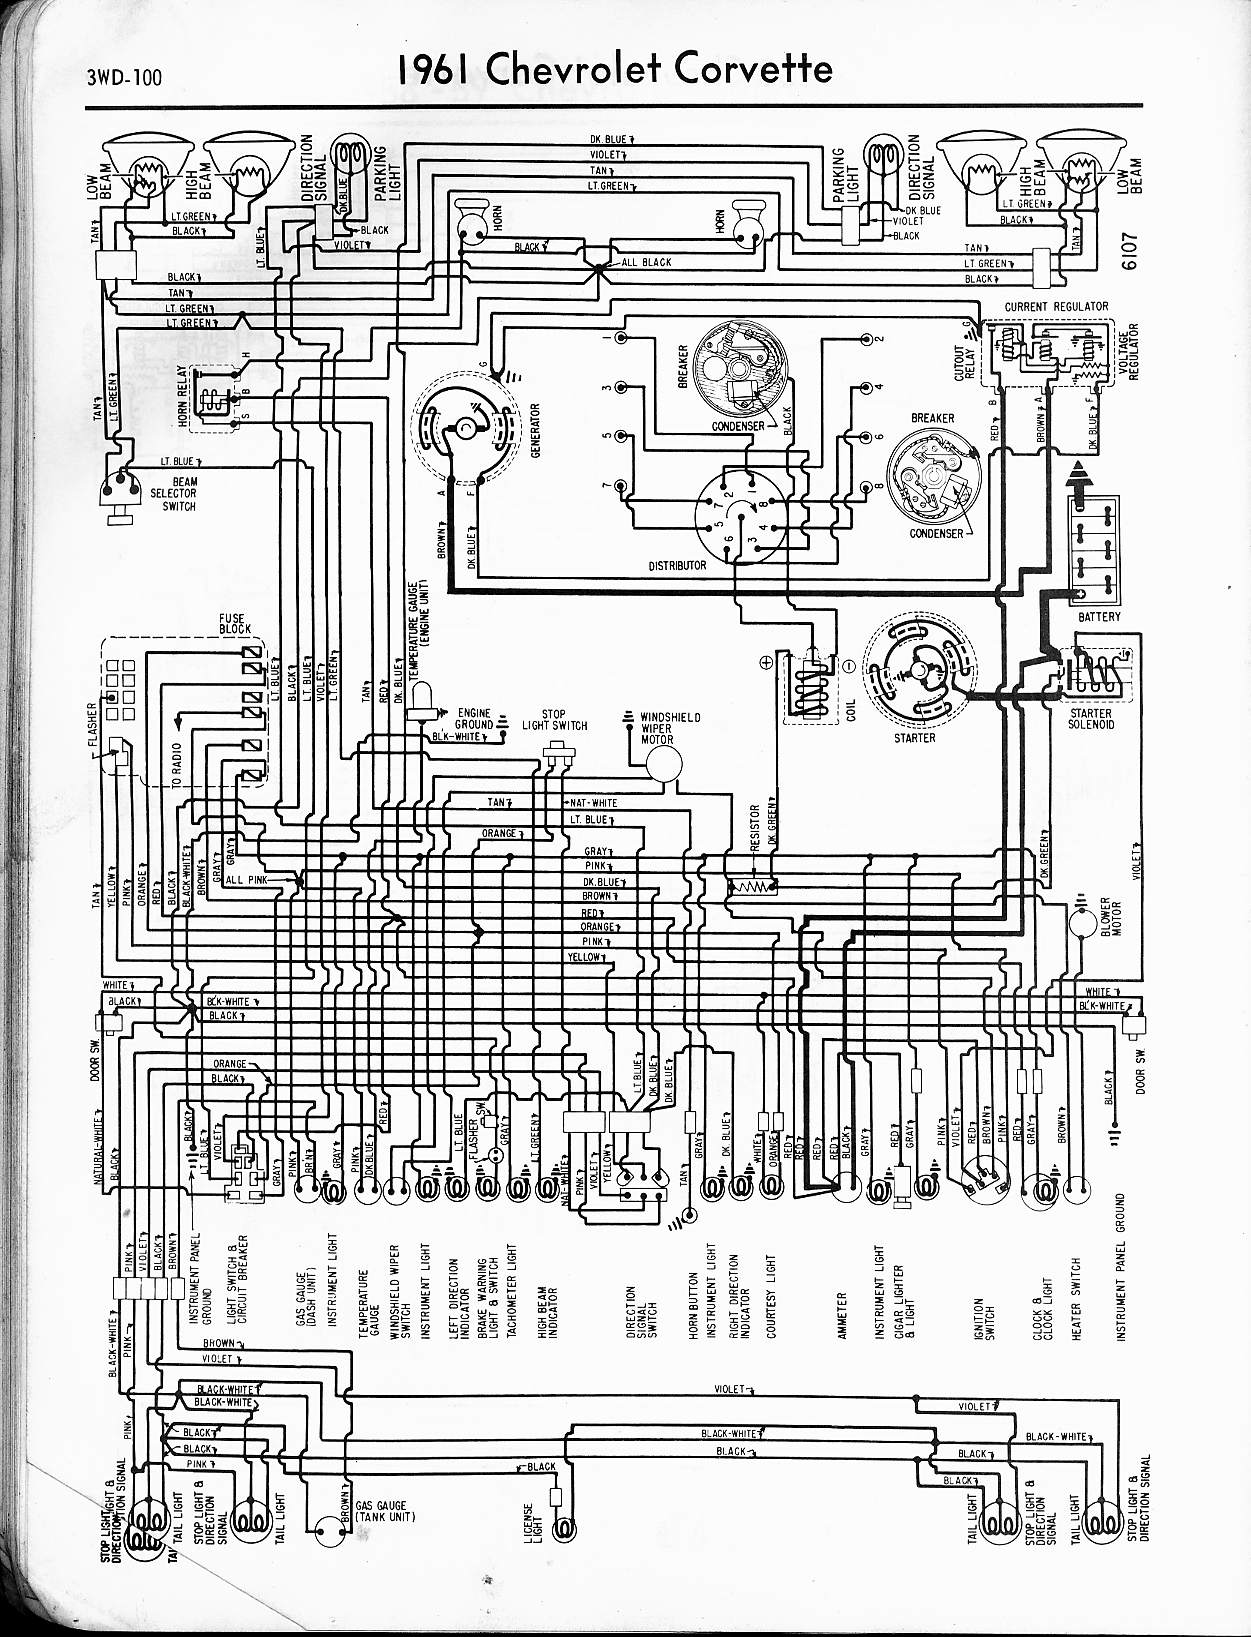 MWireChev61_3WD 100 57 65 chevy wiring diagrams 1962 impala wiring diagram at webbmarketing.co